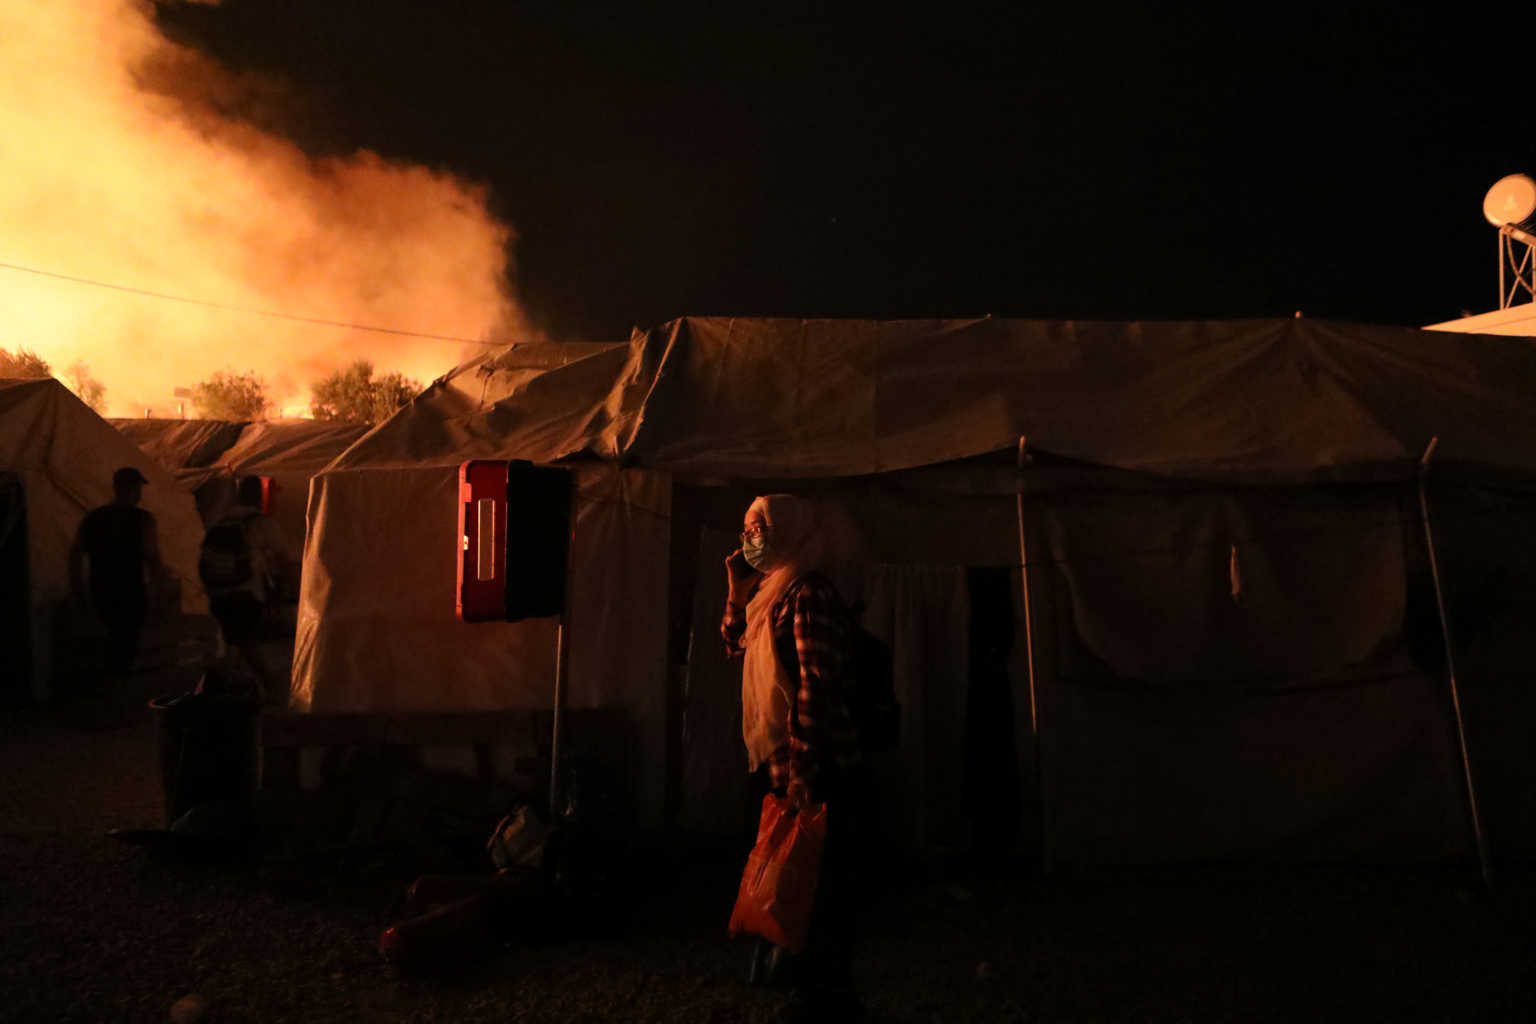 Flames rise as a fire burns at the Moria camp for refugees and migrants on the island of Lesbos